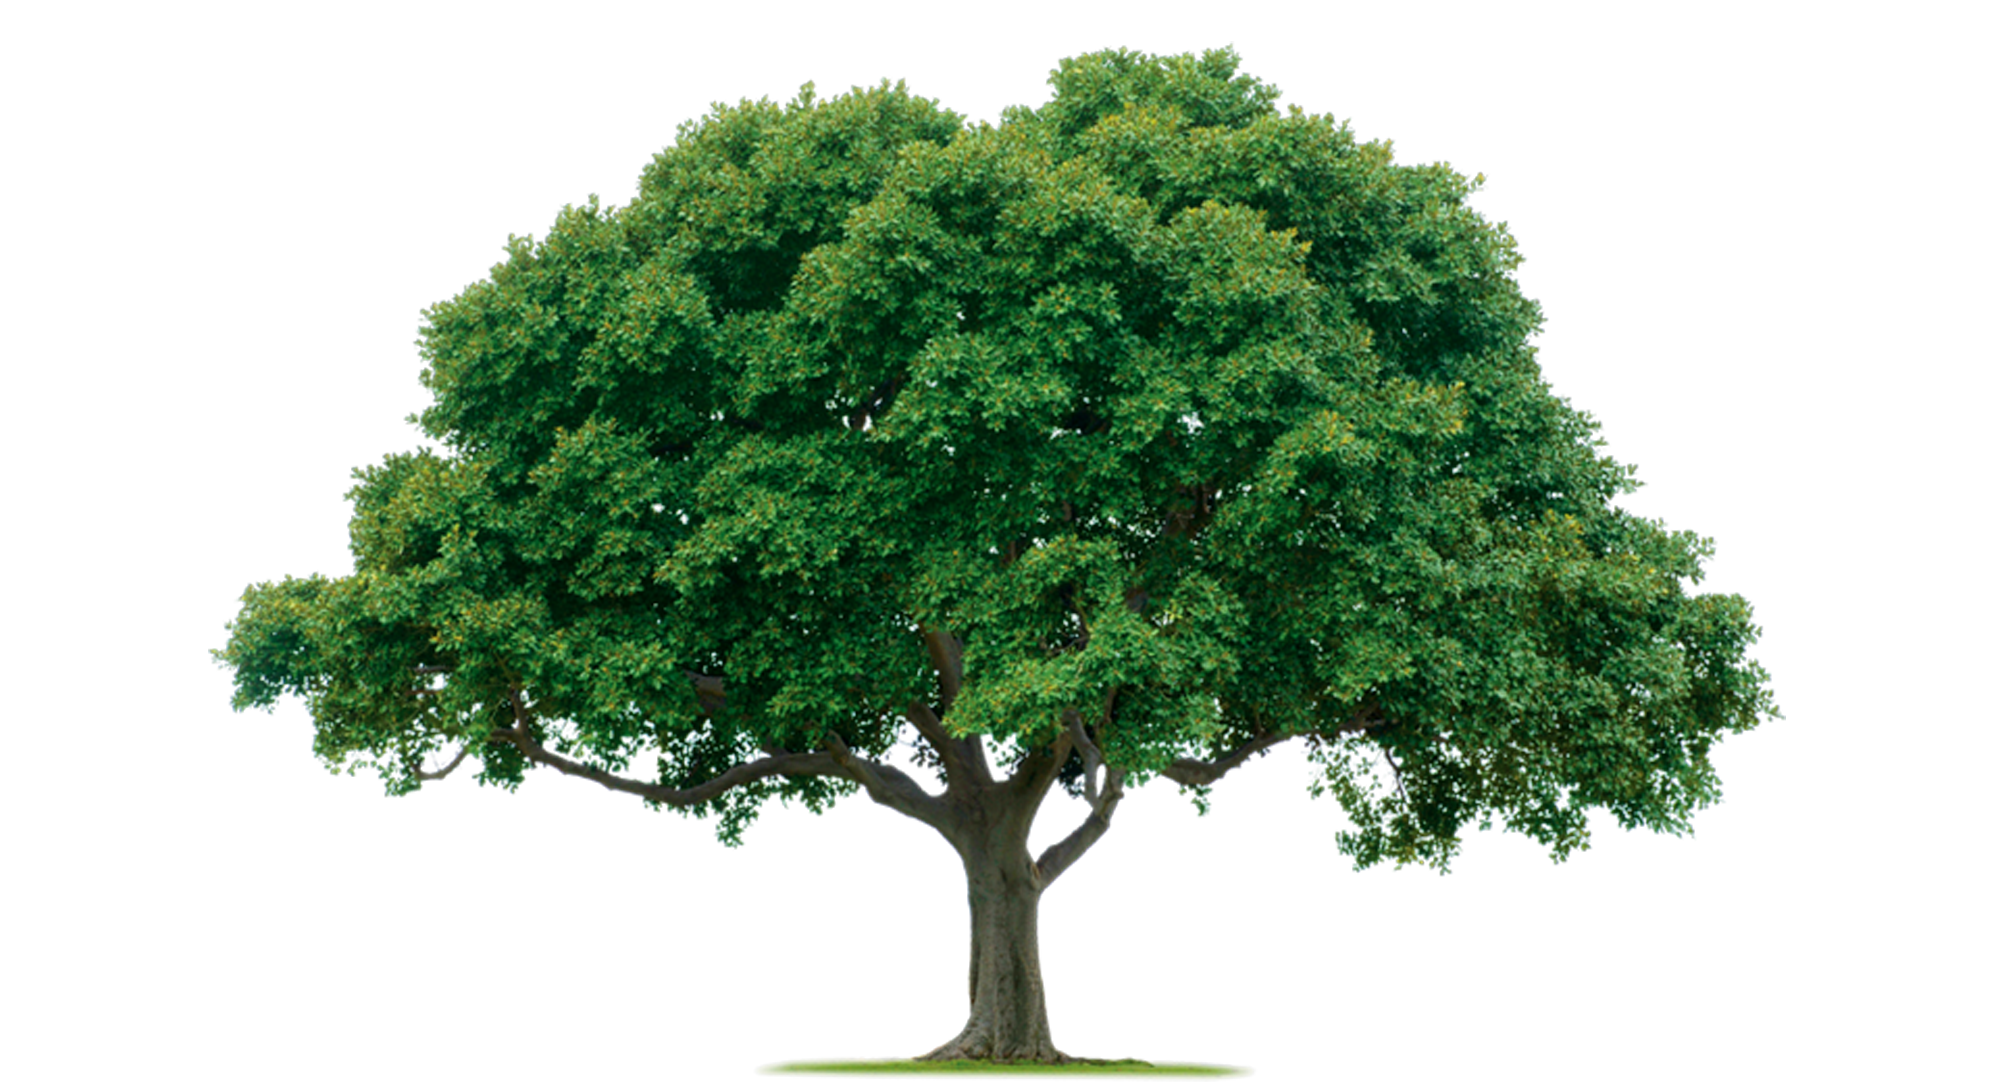 image regarding Printable Trees called Printable Tree Backgrounds Shared Through: Tom 07-08-2013 Do-it-yourself